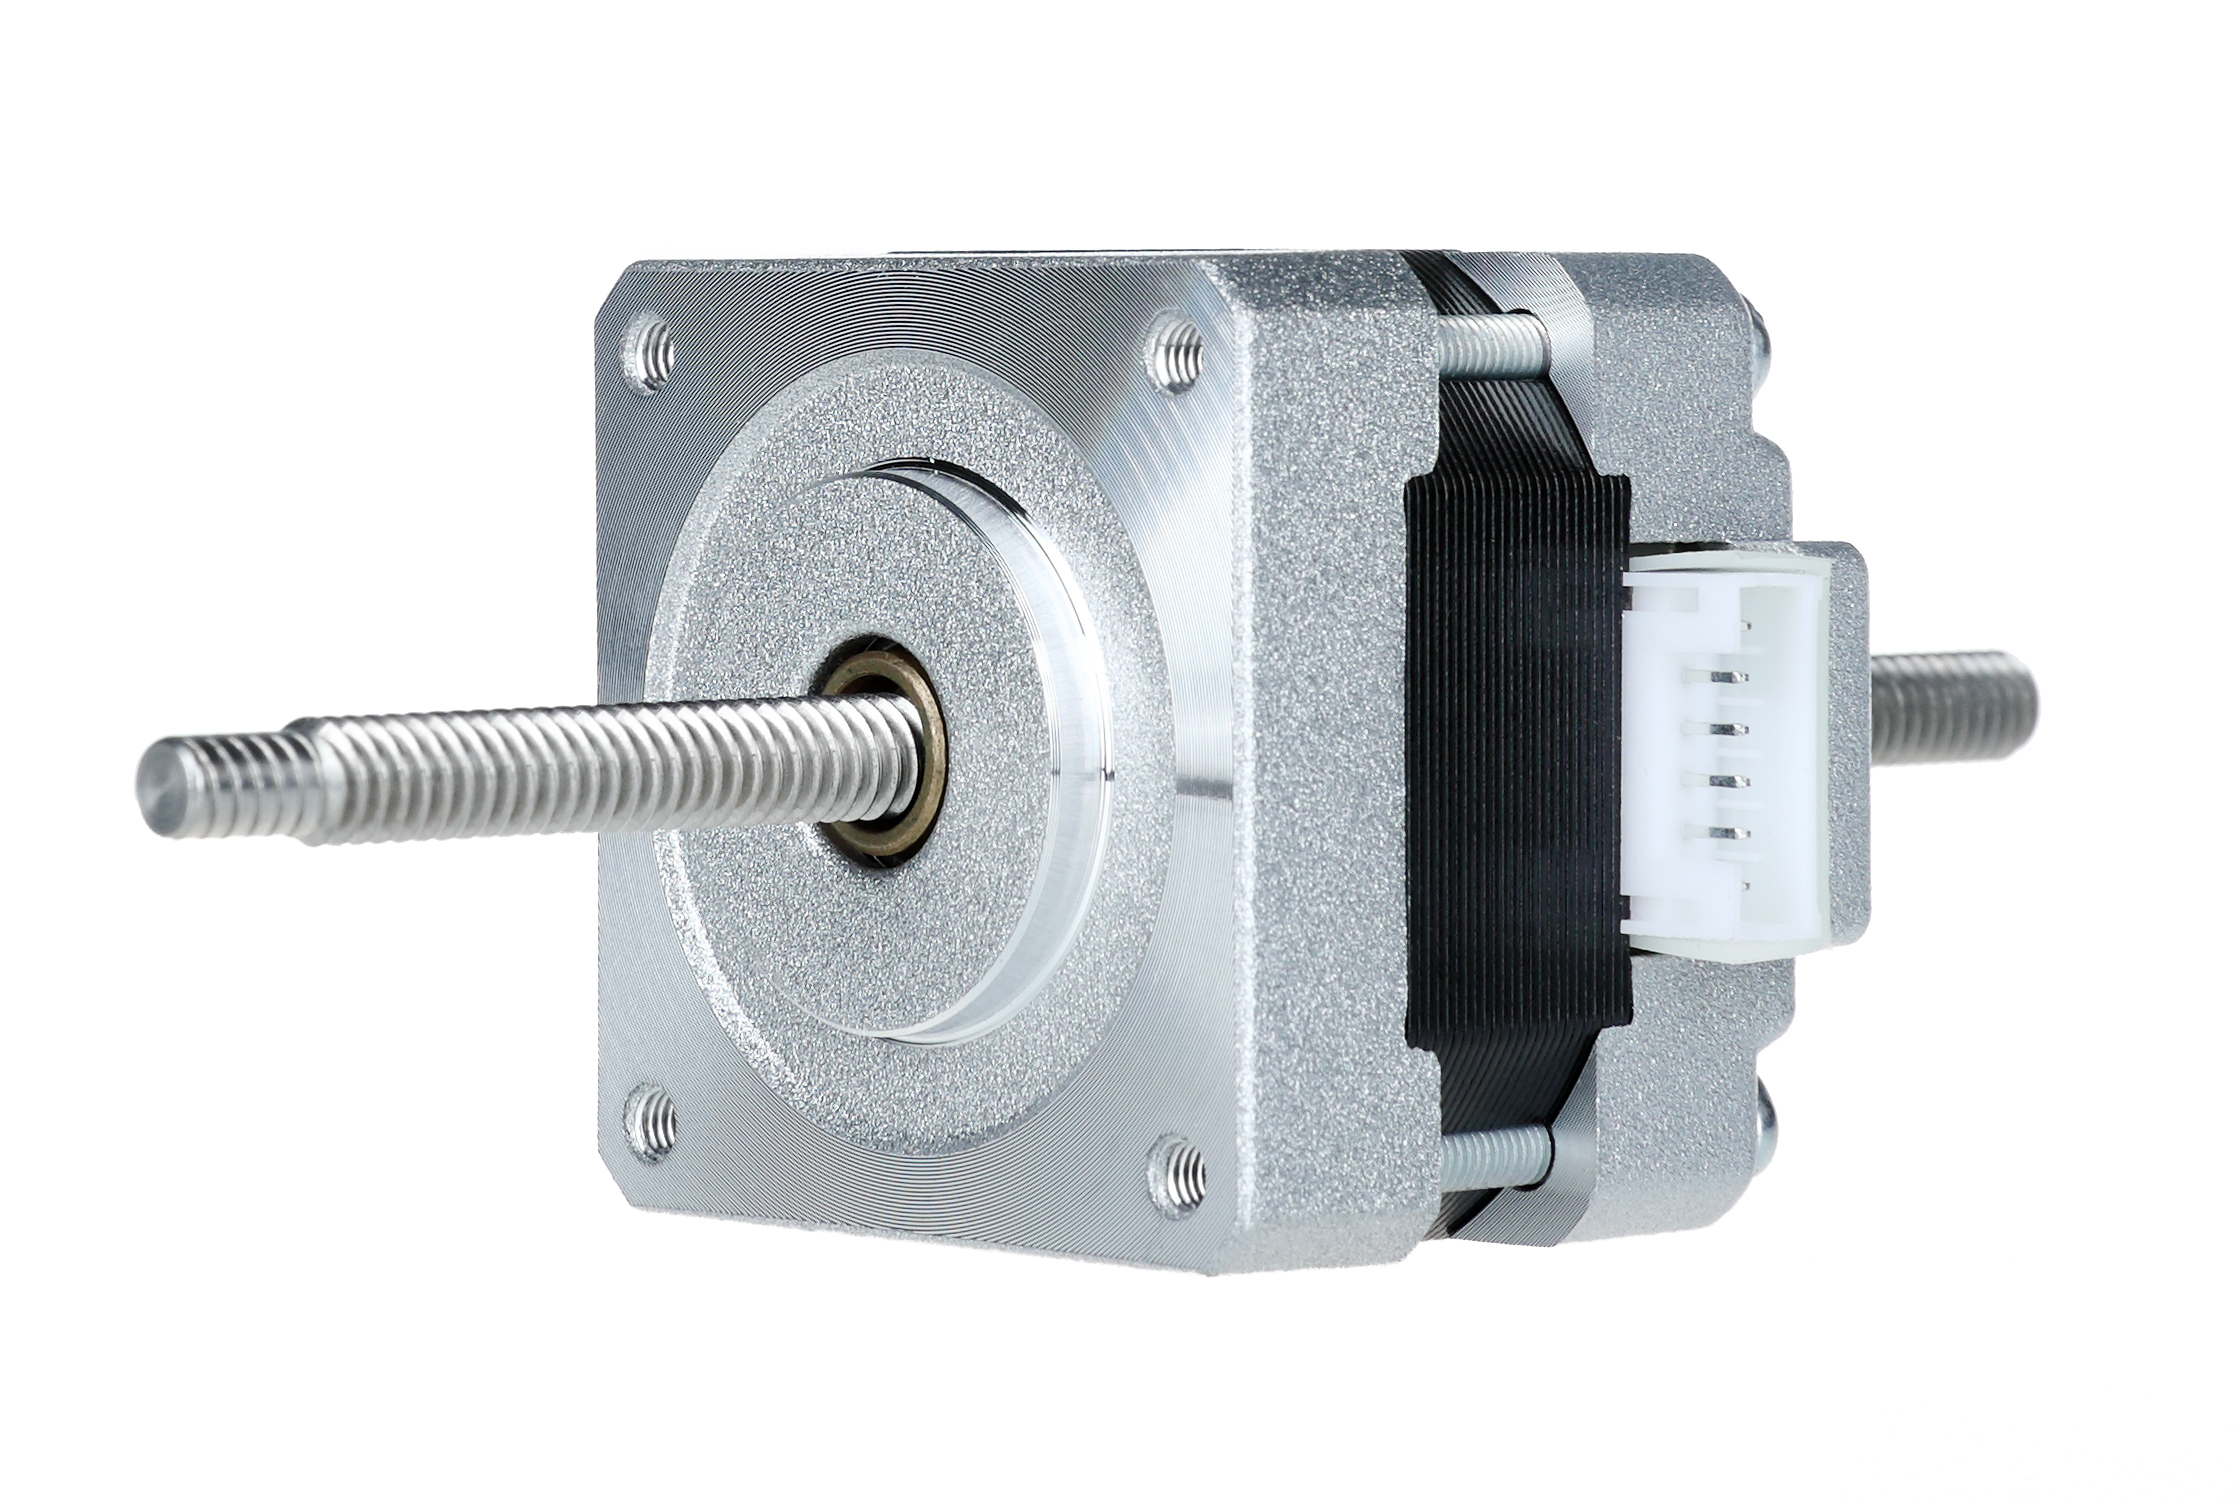 1PC Nema 16 Stepper Linear Motor of 100mm Stoke Length 39BYGL215A,12VDC,0.4A,0.21Nm torque